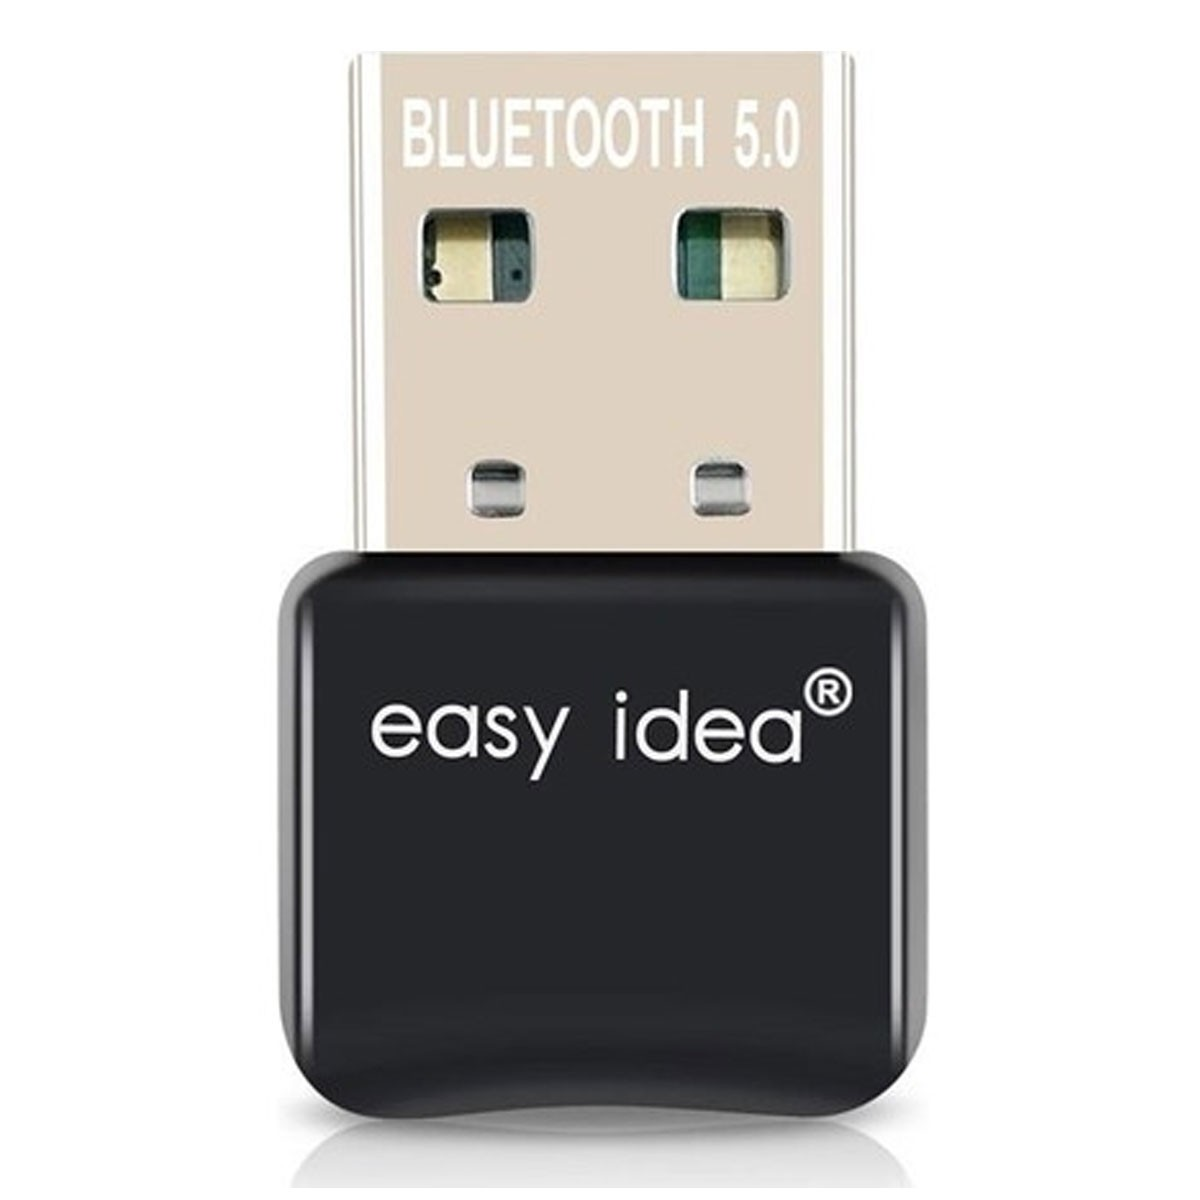 Adaptador Usb Bluetooth 5.0 Dongle Para Pc Notebook EasyIdea